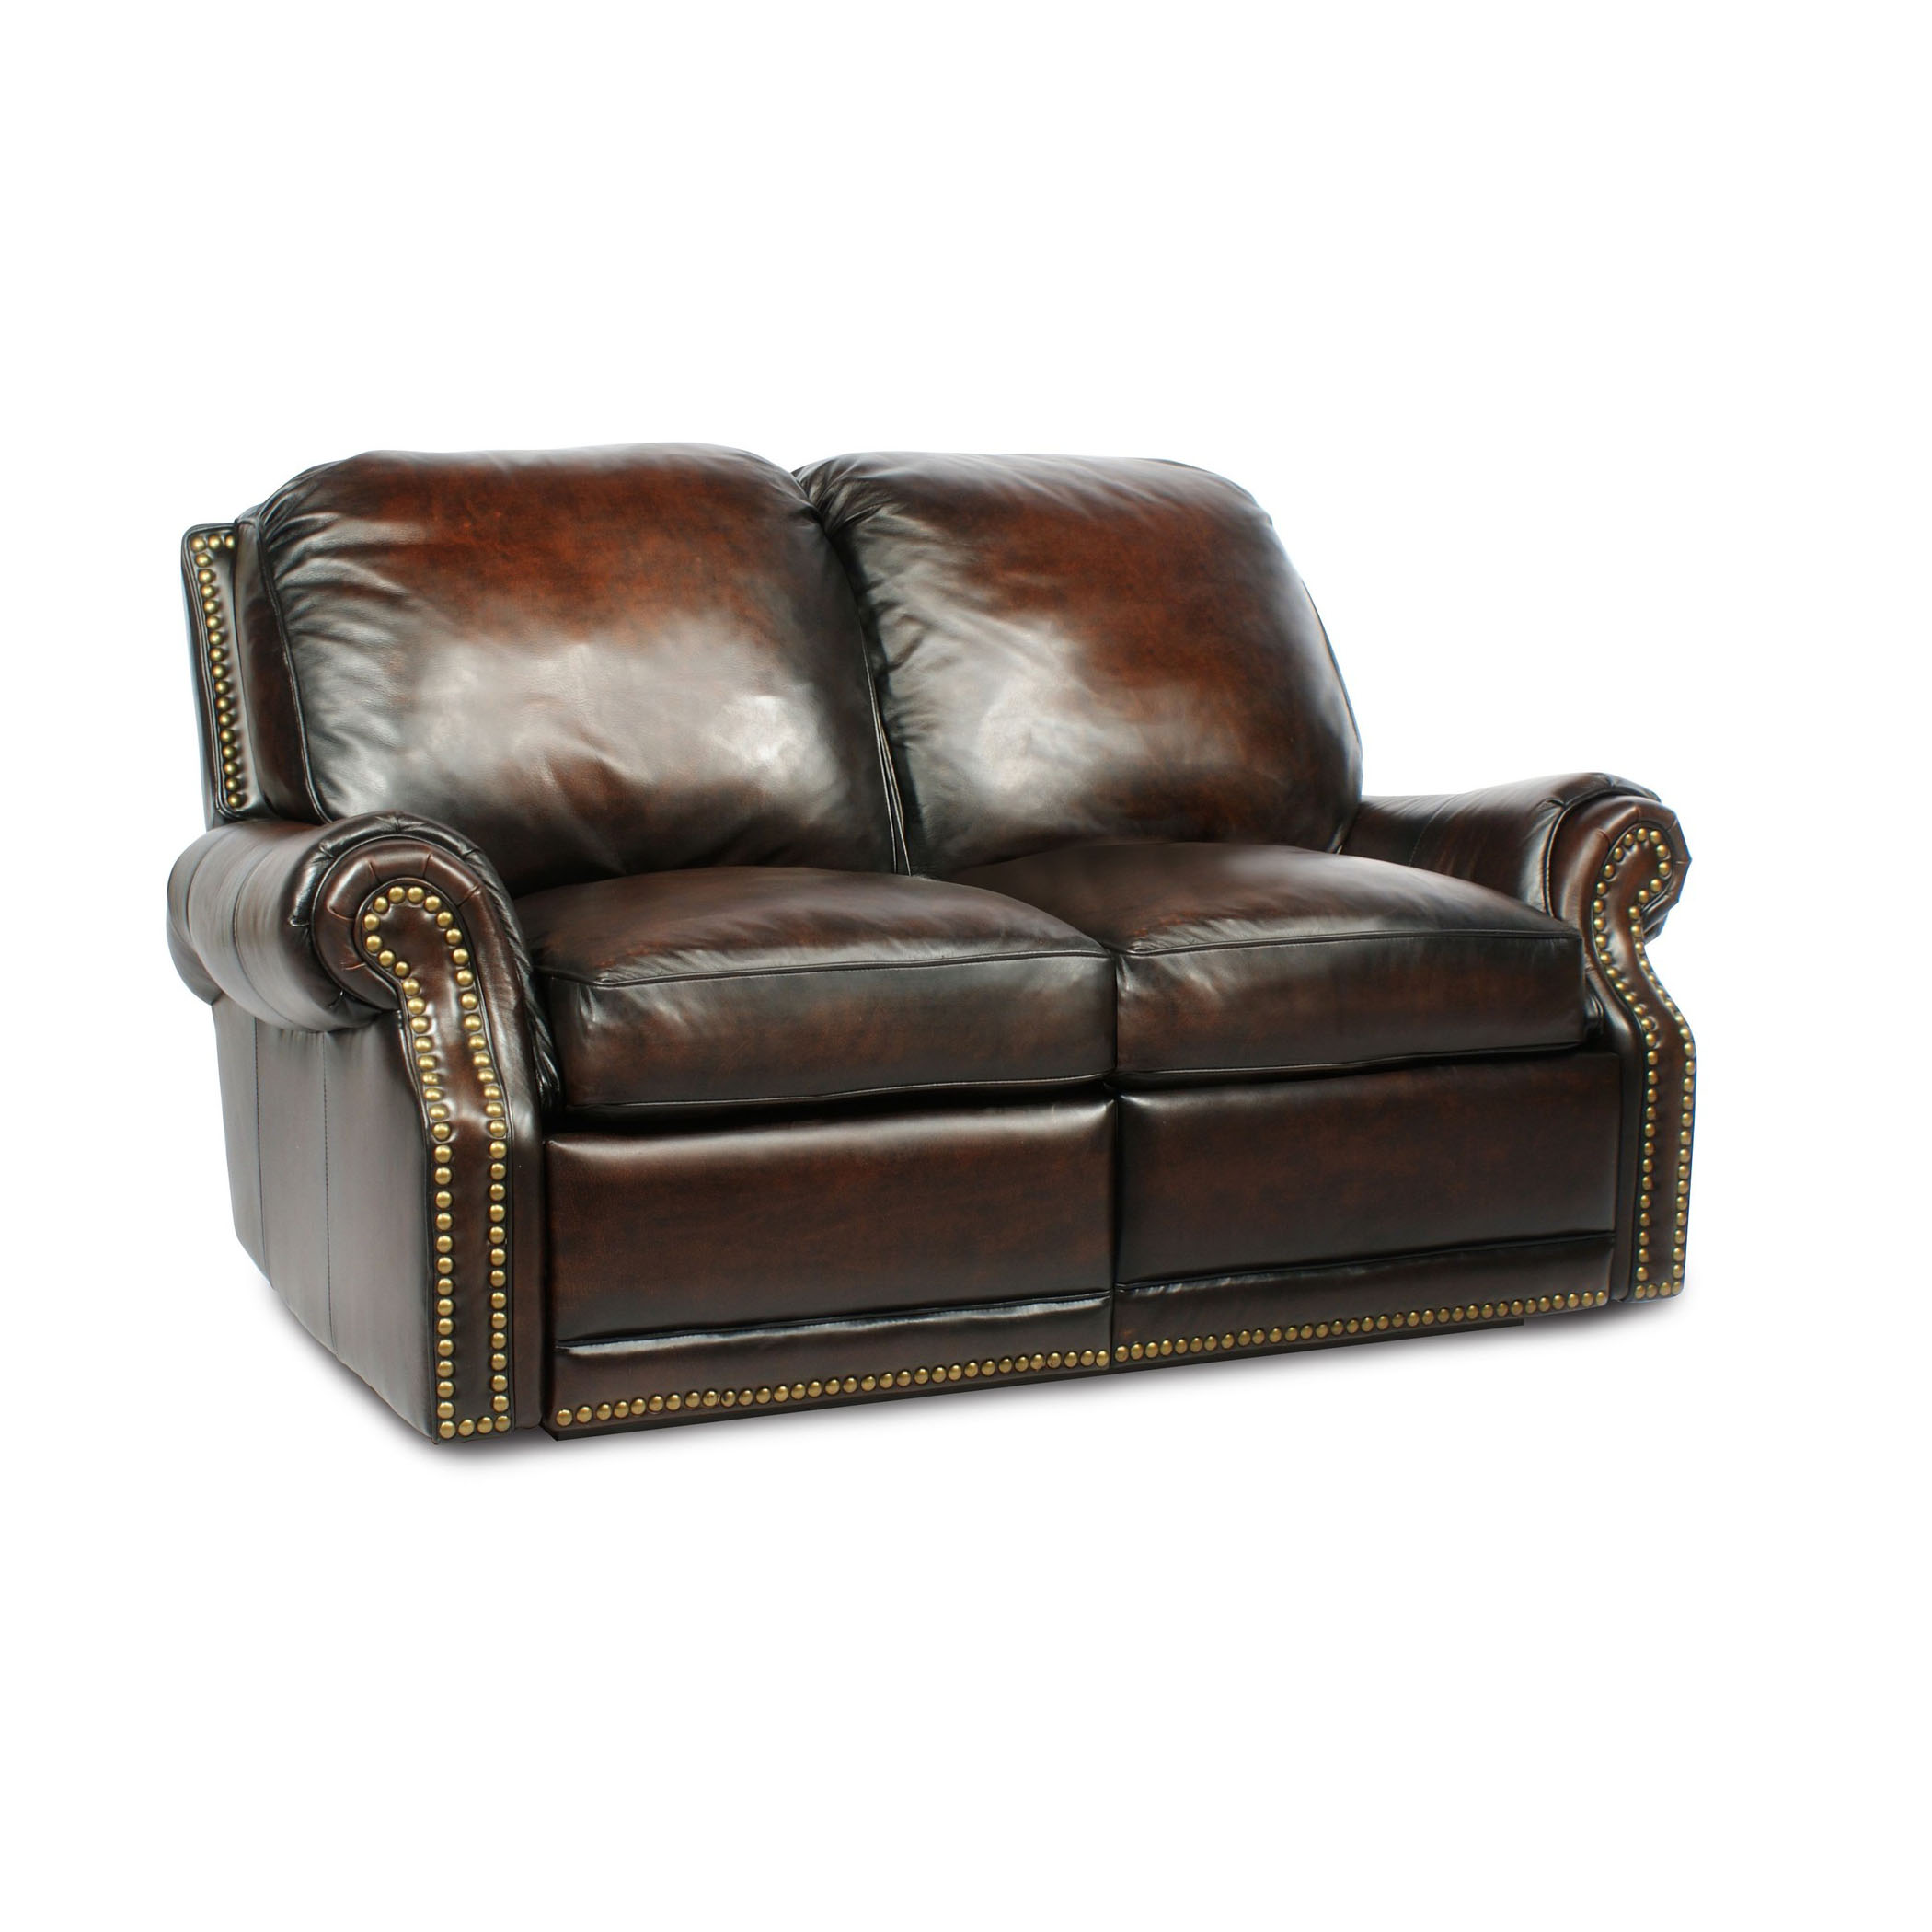 Barcalounger Premier Ii Leather 2 Seat Loveseat Sofa Leather 2 Seat Loveseat Sofa Furniture